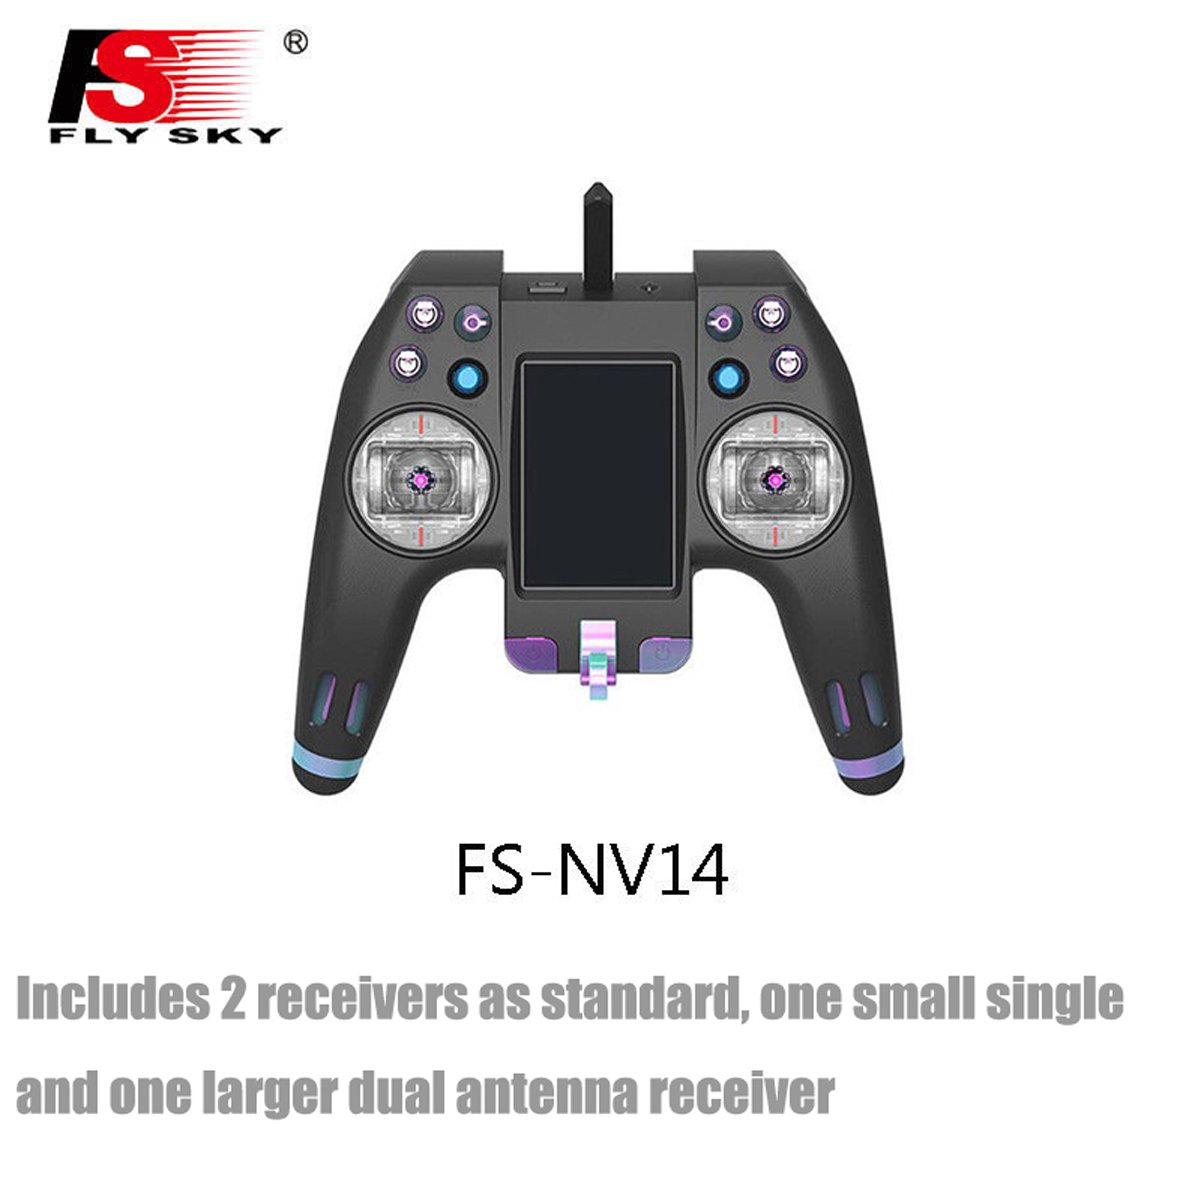 Flysky NV14 FS-NV14 RC Transmitter Remote Controller 2.4G 14CH Touch Screen with FS X8B iA8X Receiver USB Simulator Bluetooth for RC Cross Racing FPV Drone Quadcopter